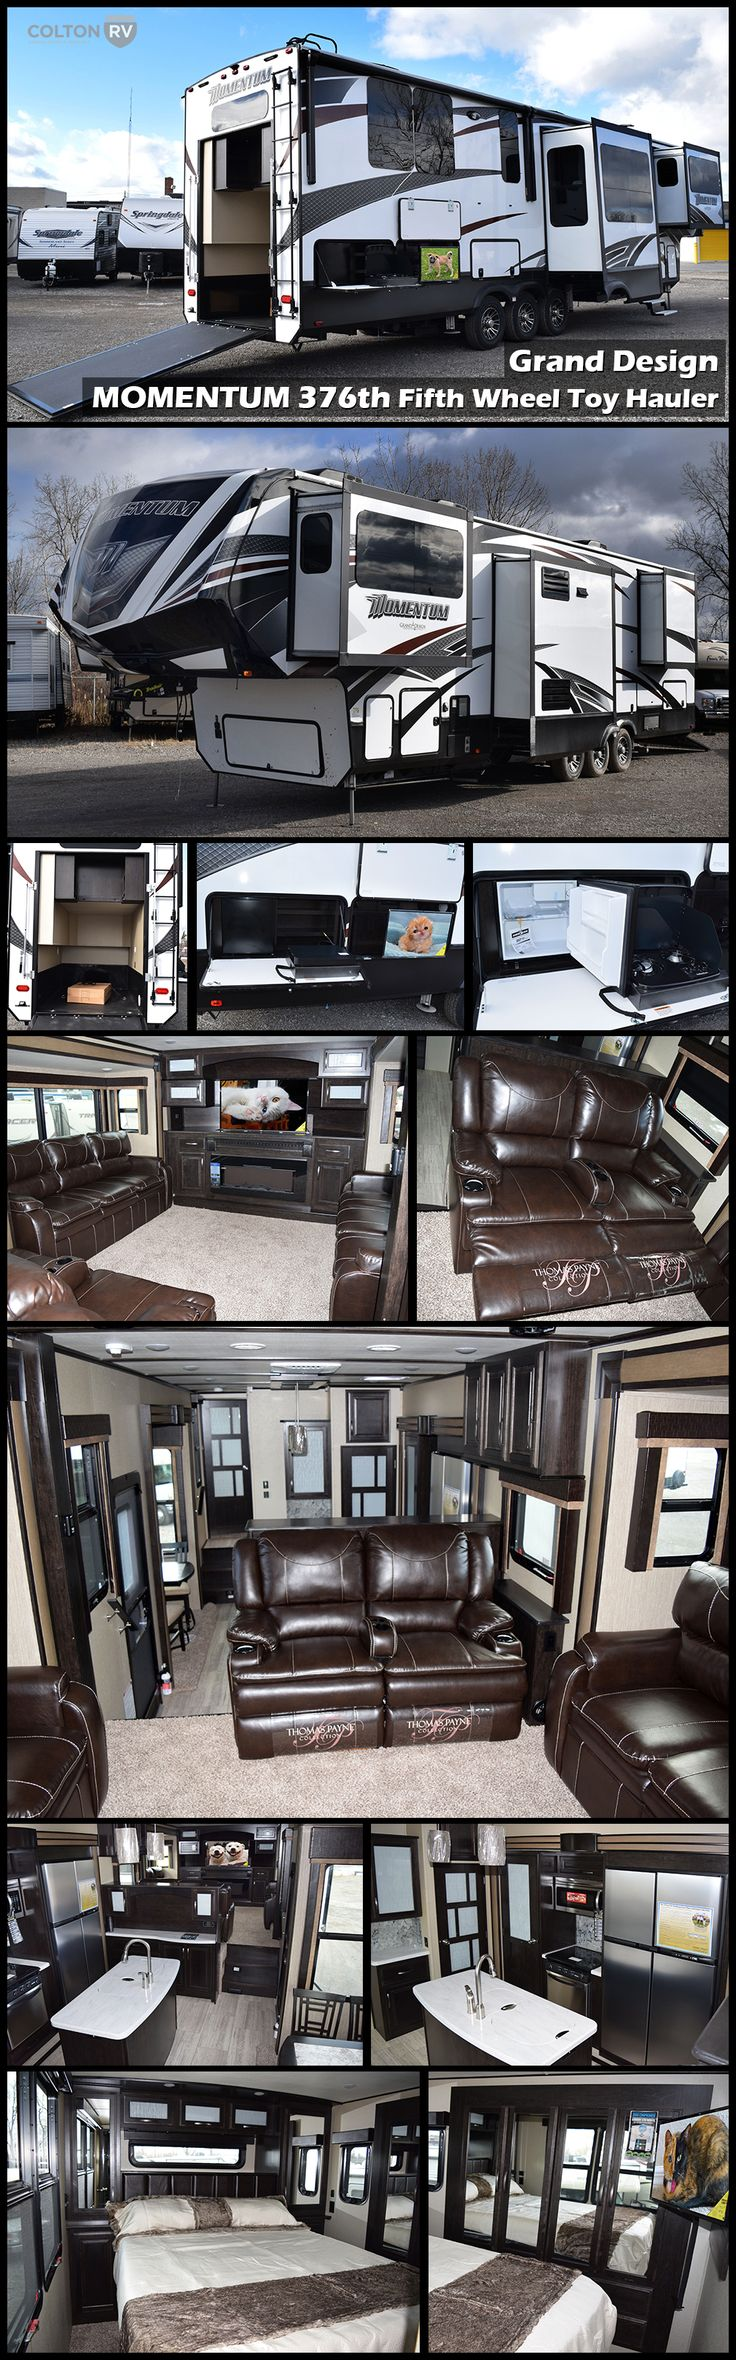 "This unique 2017 GRAND DESIGN MOMENTUM 376TH Fifth Wheel Toy Hauler features a rear master bedroom above a 9' garage. Just outside the bathroom, step down into a spacious kitchen and dining area. Head up the steps to the raised front living and entertainment area with theater seating and TWO 80"" tri-fold sofa/bed, plus a 50"" TV with fireplace! Oh, don't forget the outdoor kitchen and TV. The convenient enclosed fuel pump station for your toys will allow the fun to continue all weekend long!"